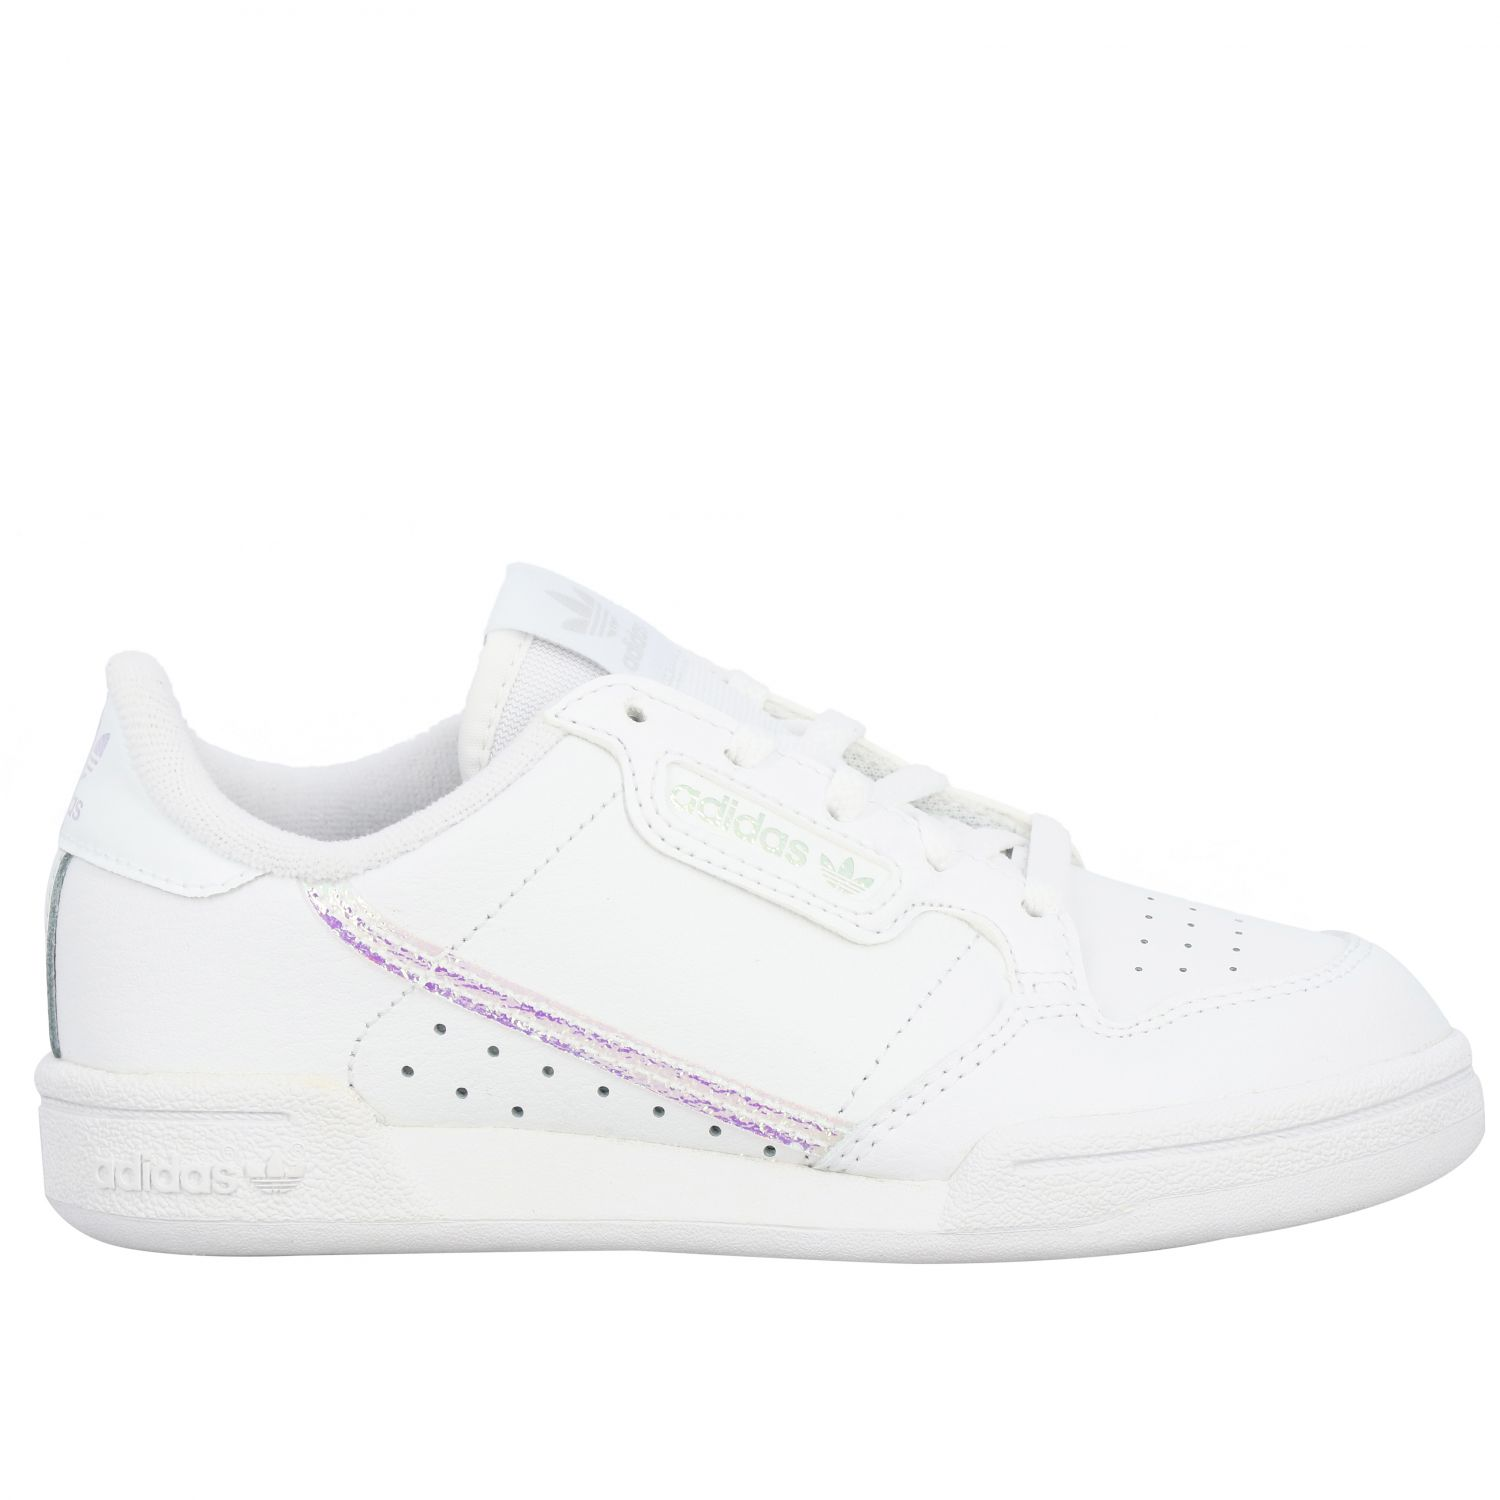 Scarpe Adidas Originals: Sneakers Continental 80 Adidas Originals in pelle bianco 1